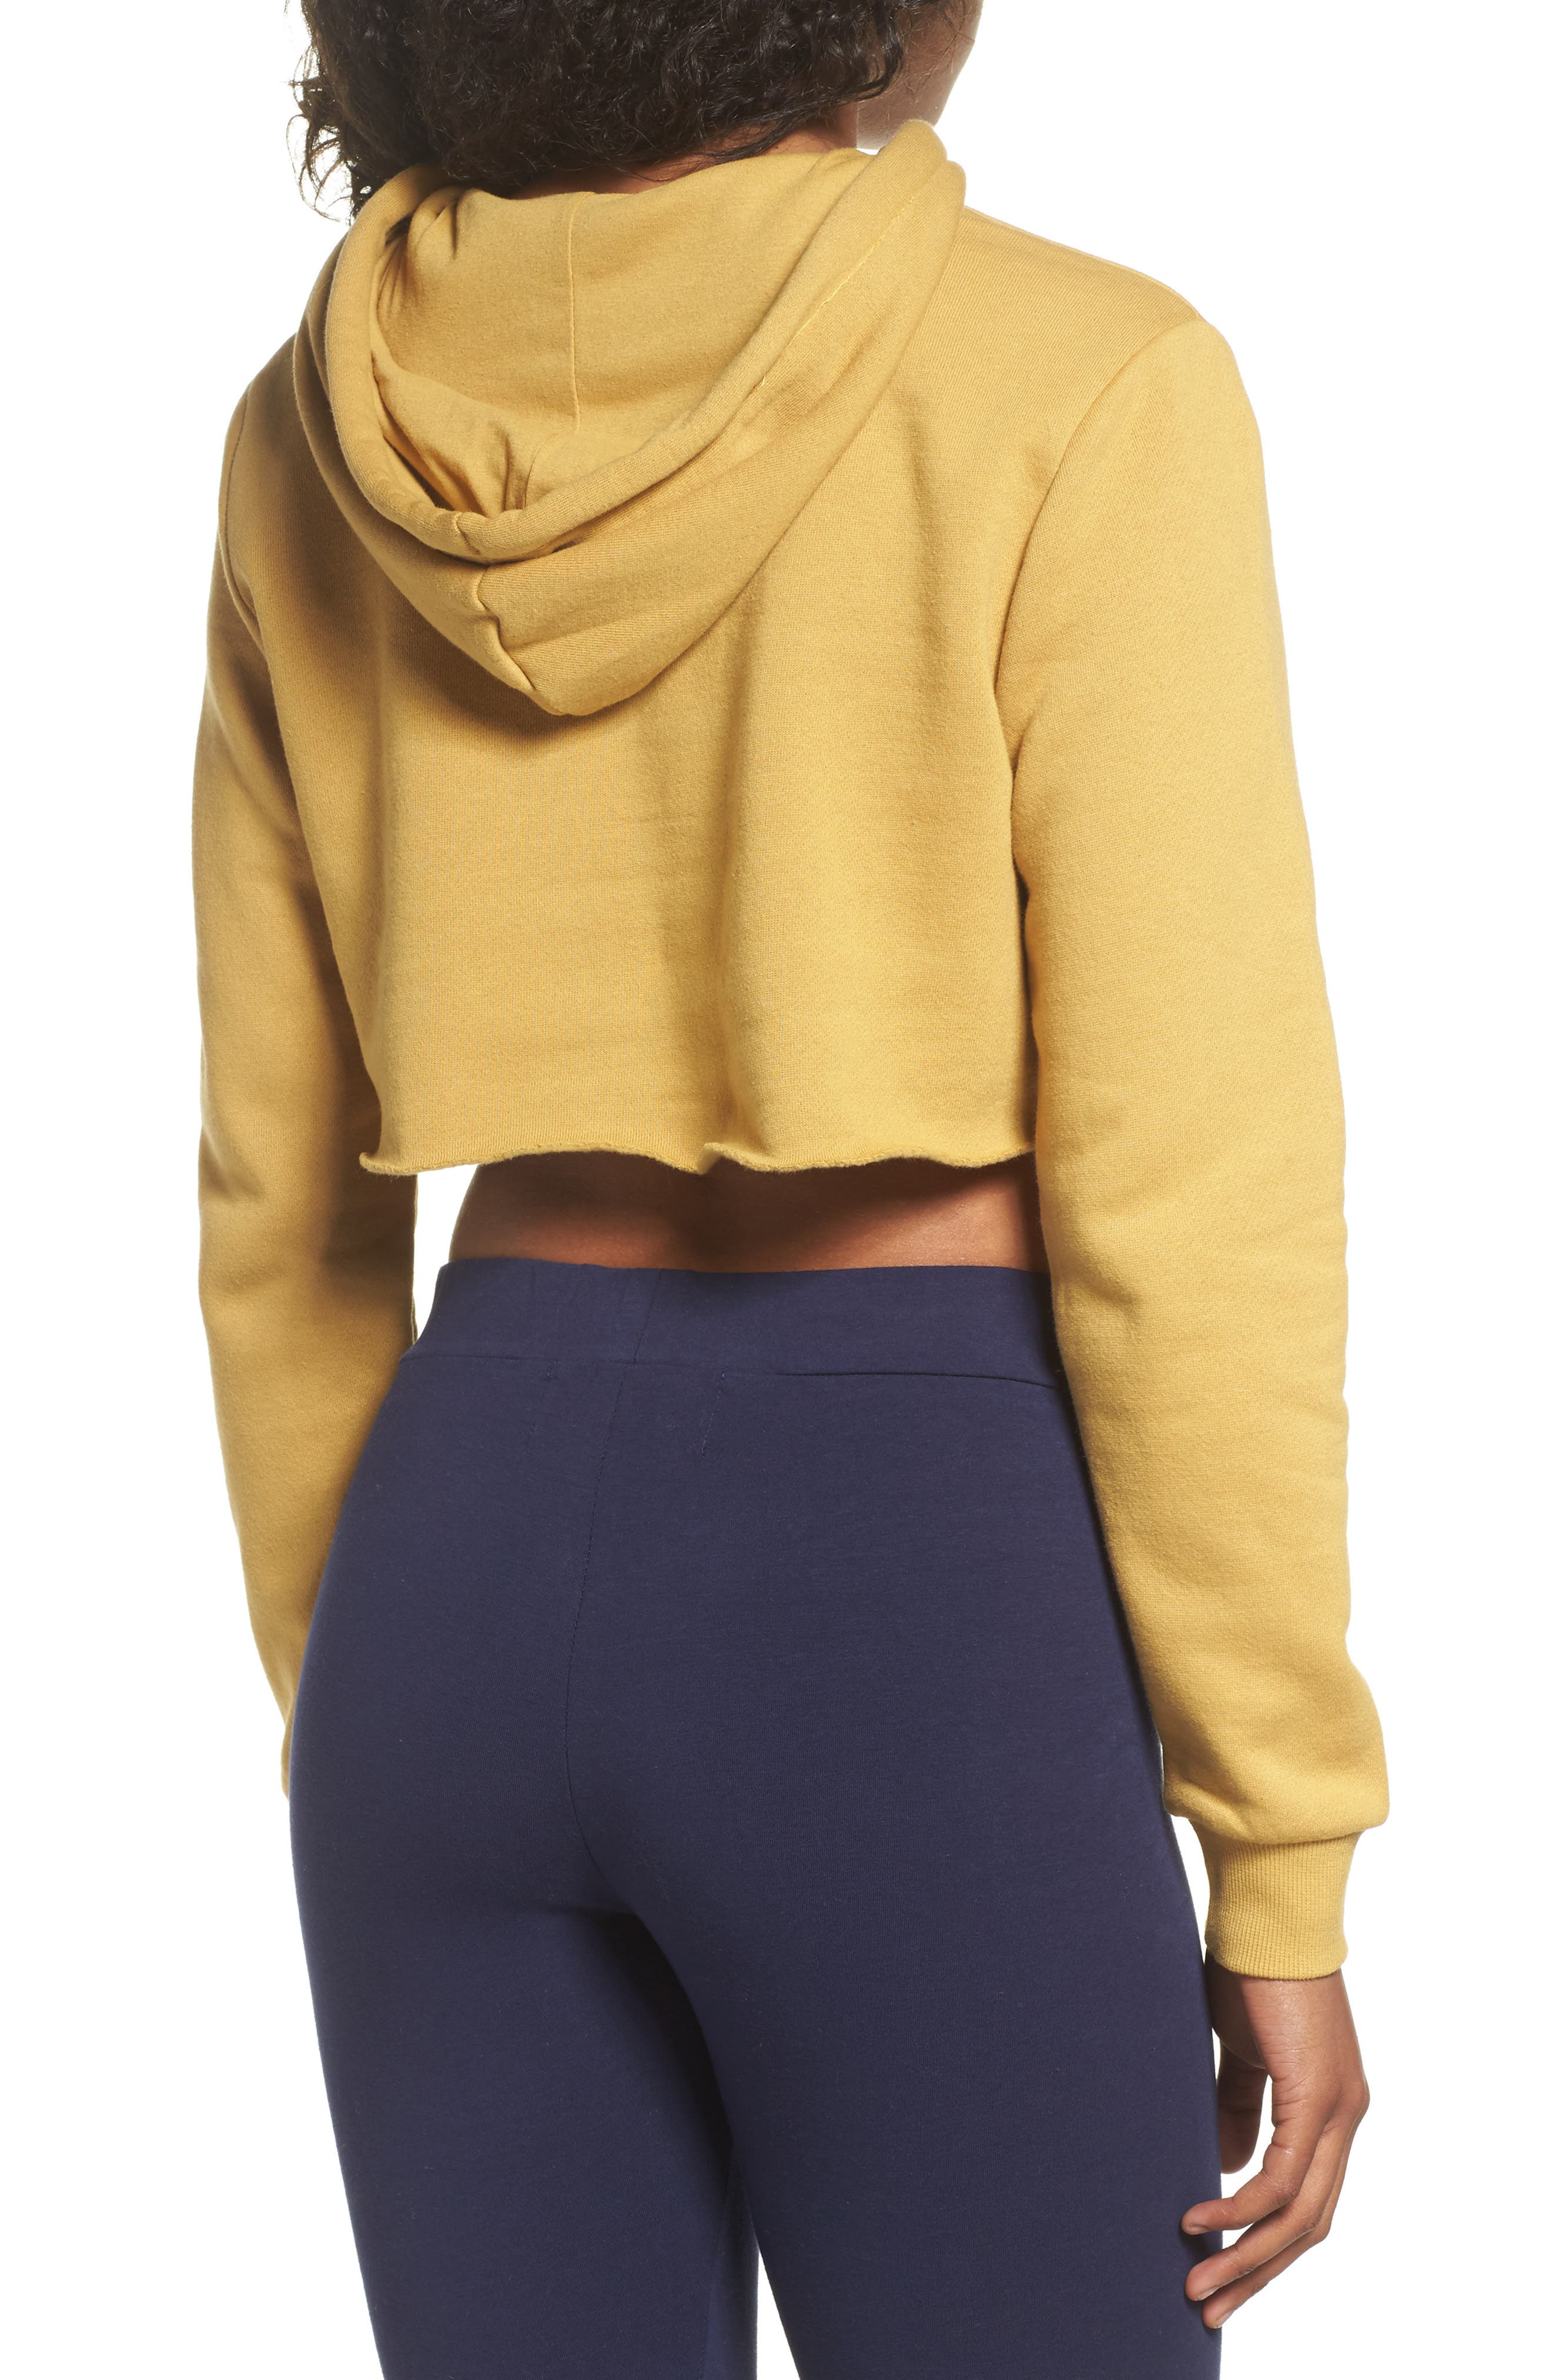 Pam Crop Hoodie,                             Alternate thumbnail 2, color,                             Mustard Gold/ Navy/ White